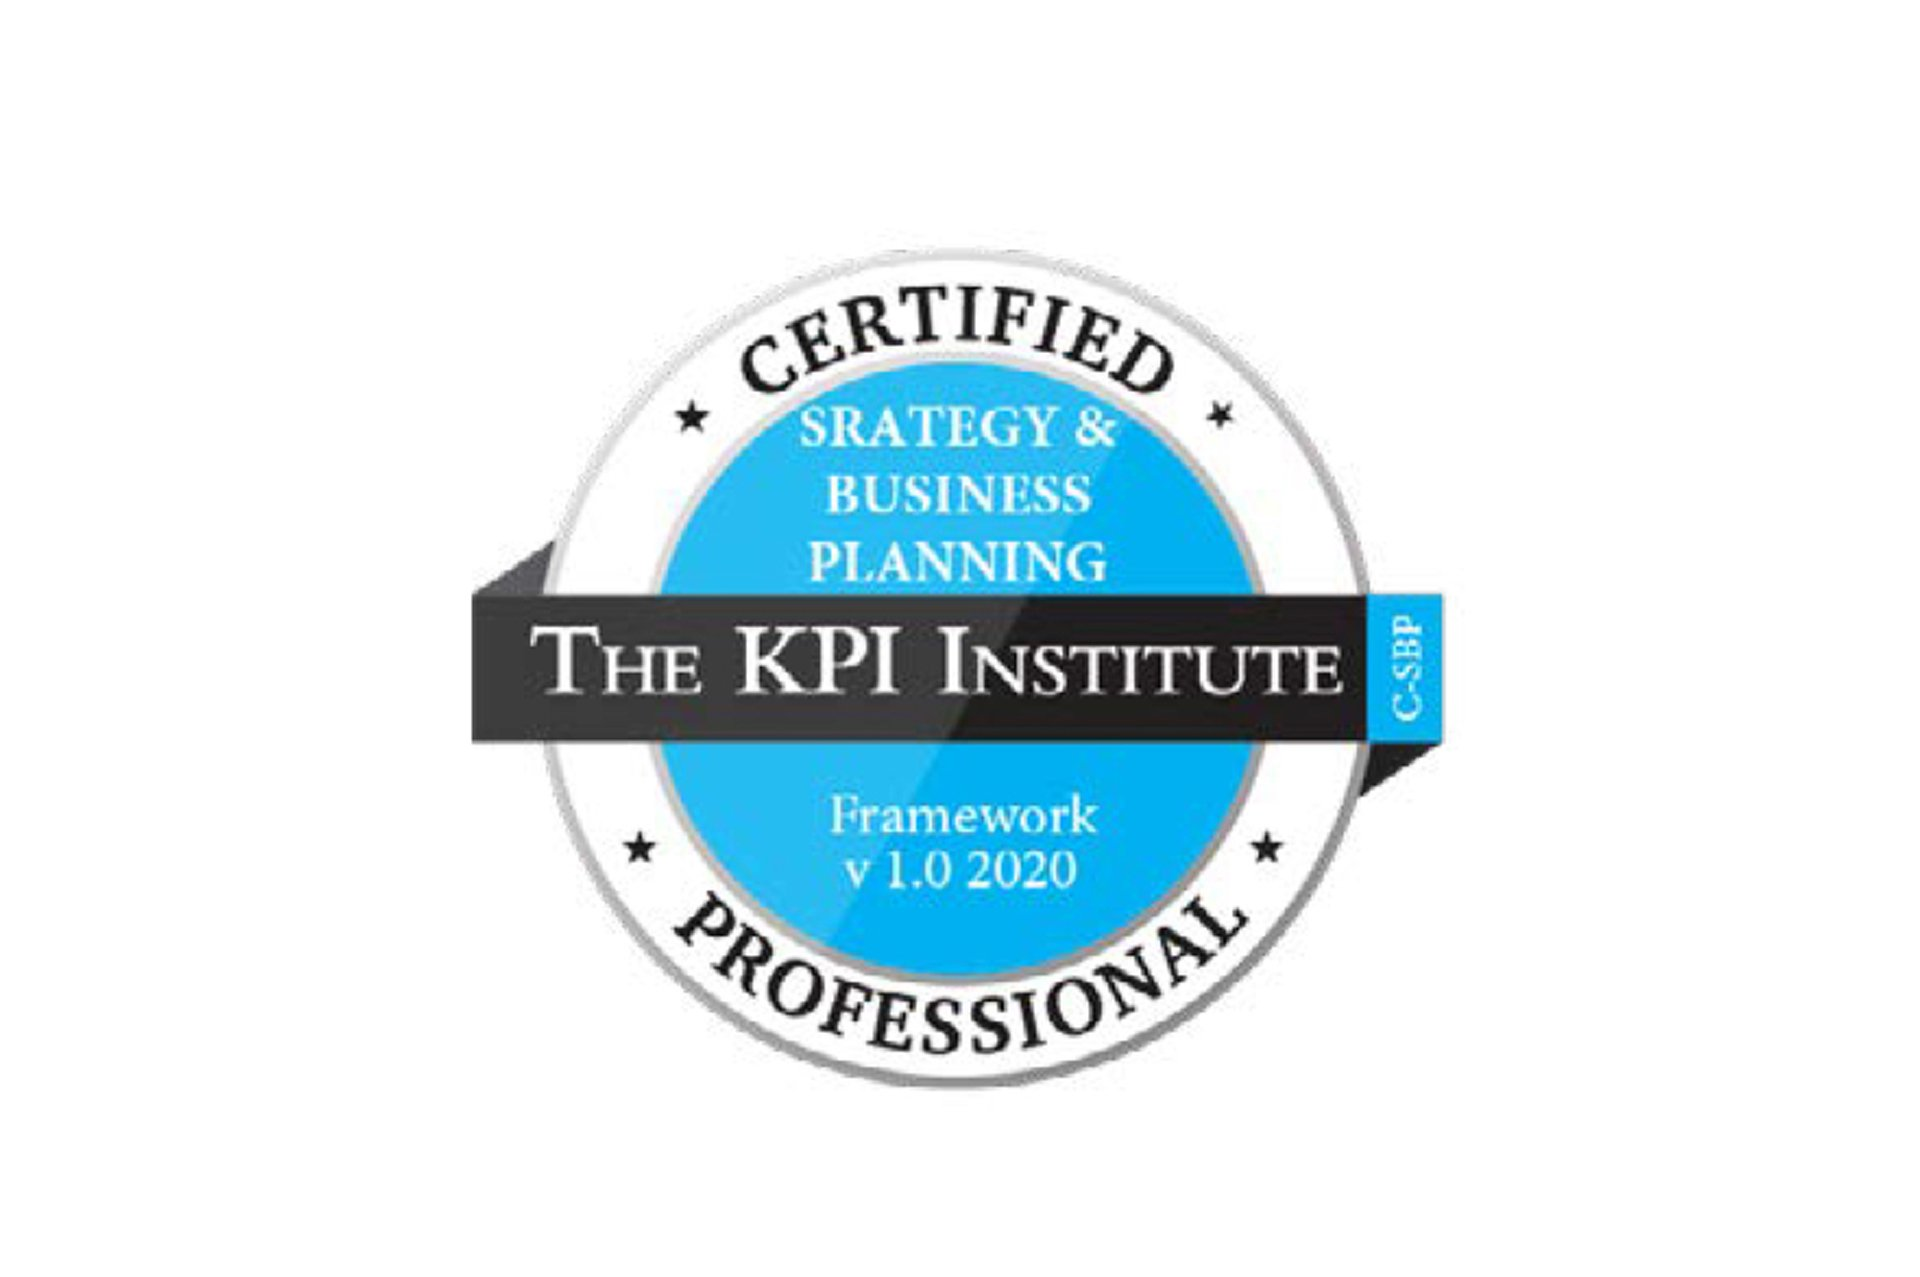 Certified Strategy and Business Planning Professional сургалт